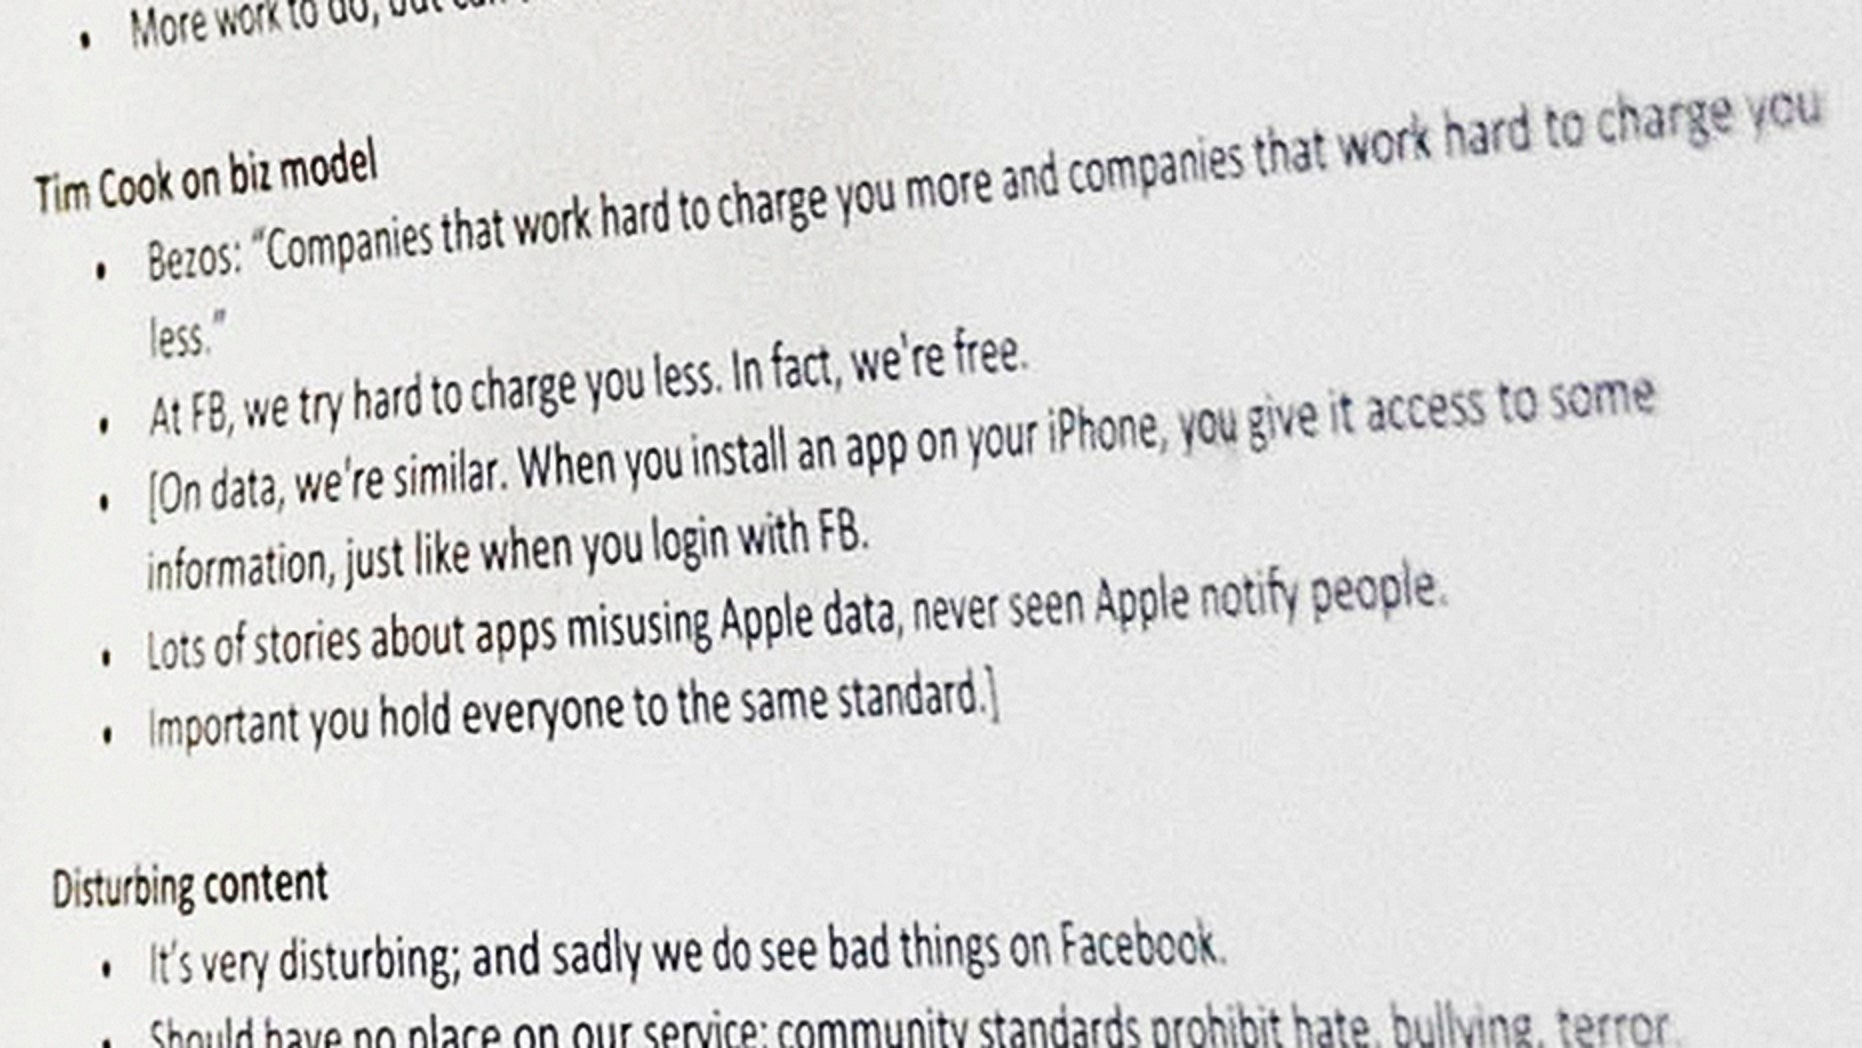 A close-up of Facebook CEO Mark Zuckerberg's notes taken by an AP photographer show he was ready to hit back at Apple if questioned. (Credit: AP Photo/Andrew Harnik)